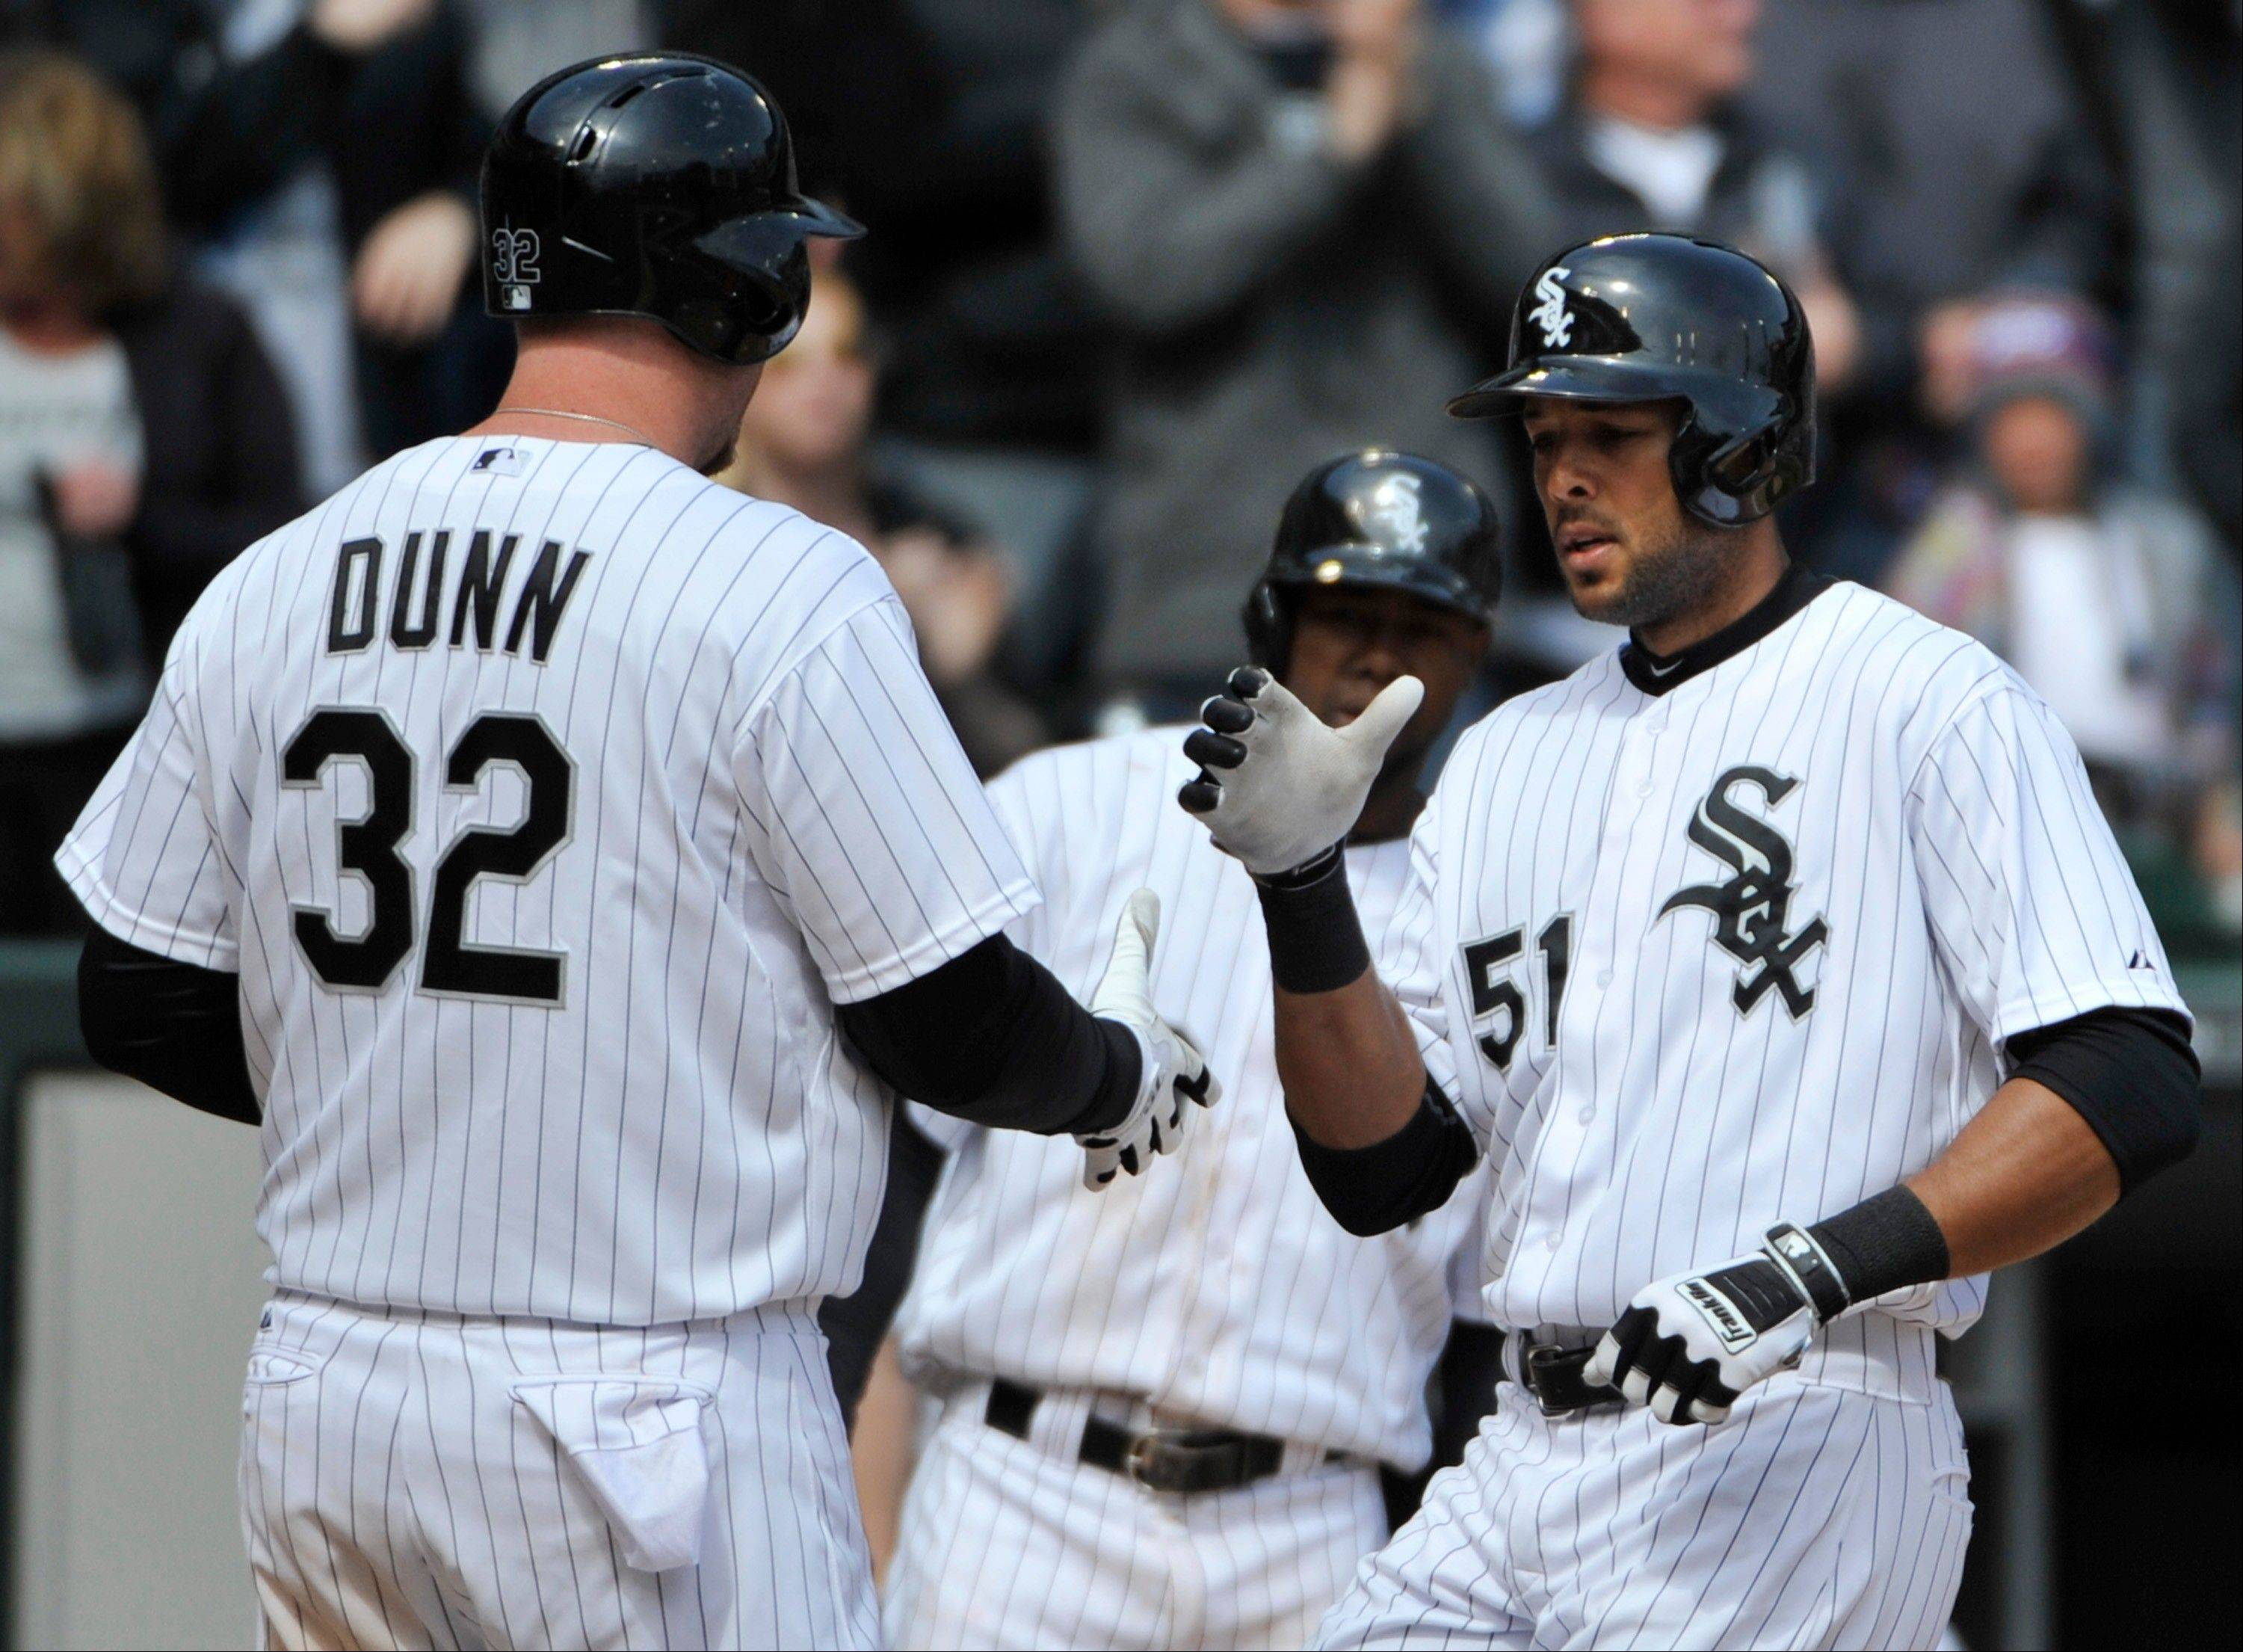 Chicago White Sox's Alex Rios, right, is greeted by Adam Dunn after hitting a two-run home run in the sixth inning of a baseball game against the Seattle Mariners, Saturday, April 6, 2013 in Chicago.